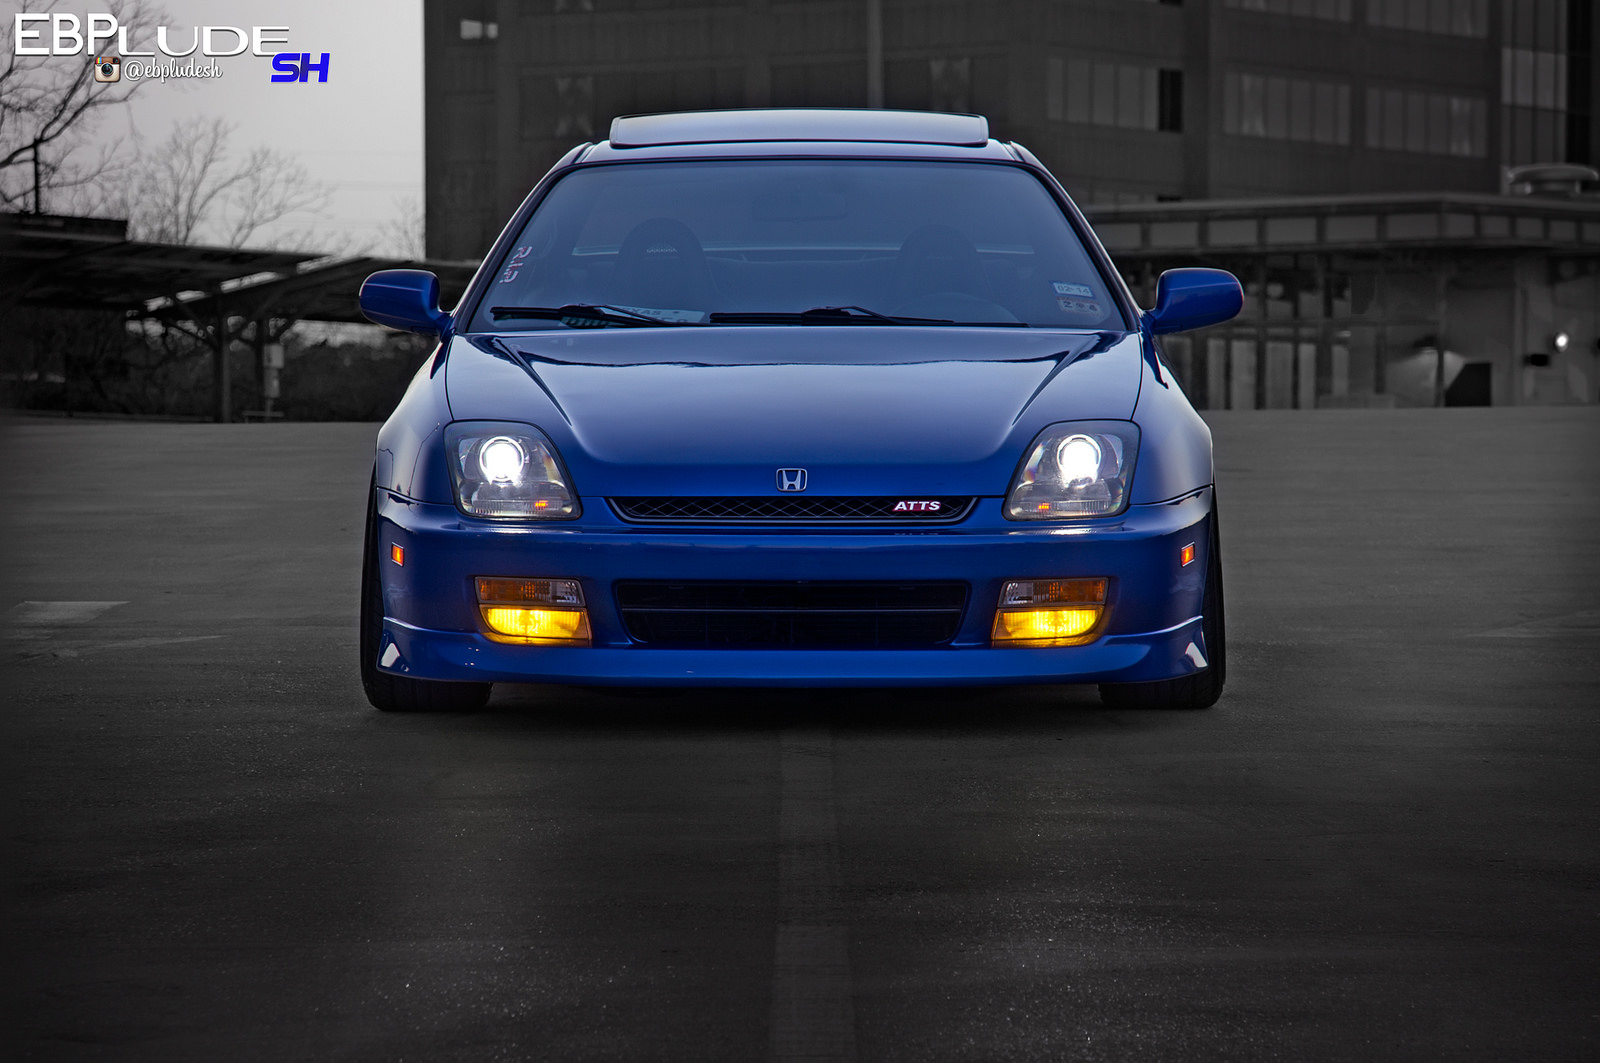 Honda Prelude Tuning on 2000 Honda Prelude Type Sh